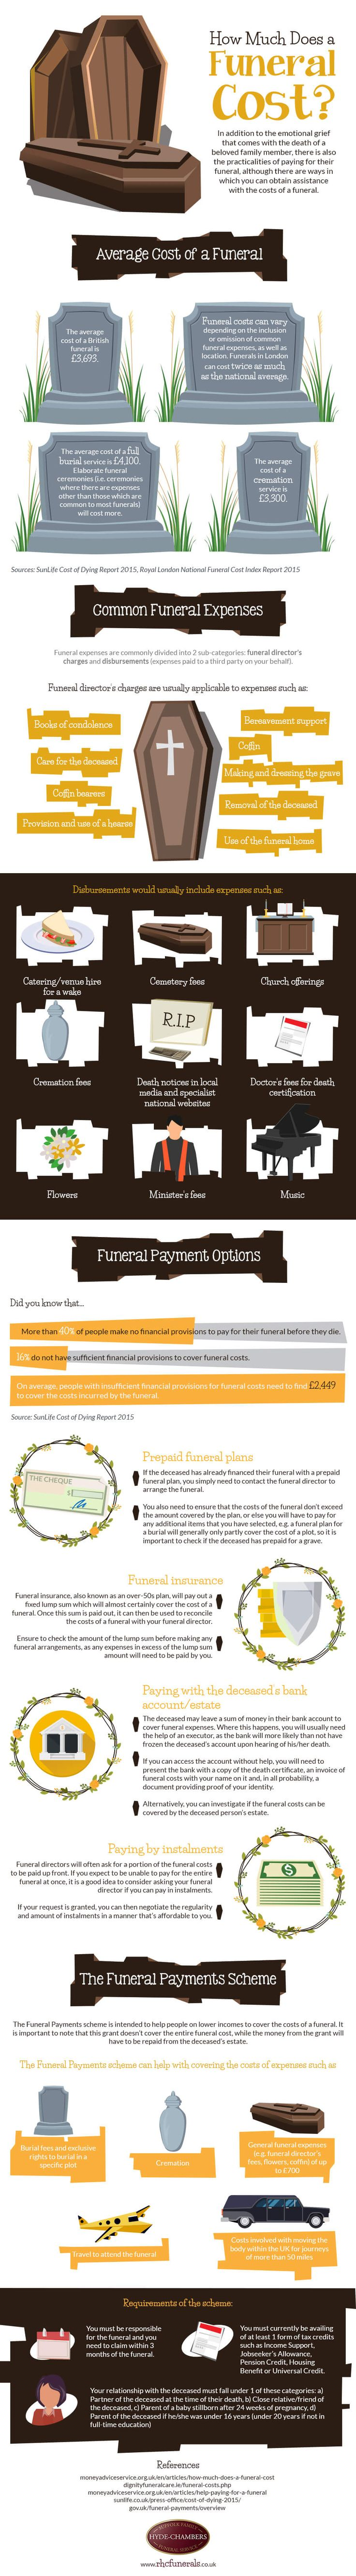 Aside from the substantial personal grief that comes with the death of a beloved friend or family member, there is also the practicality of funding the person's funeral, although there is no shortage of options to call upon to help with this task. This infographic by Hyde Chambers Funeral Service explains some of the more common ways of paying for a funeral and also outlines how you can avail of a Government grant to help with funding the funeral costs.